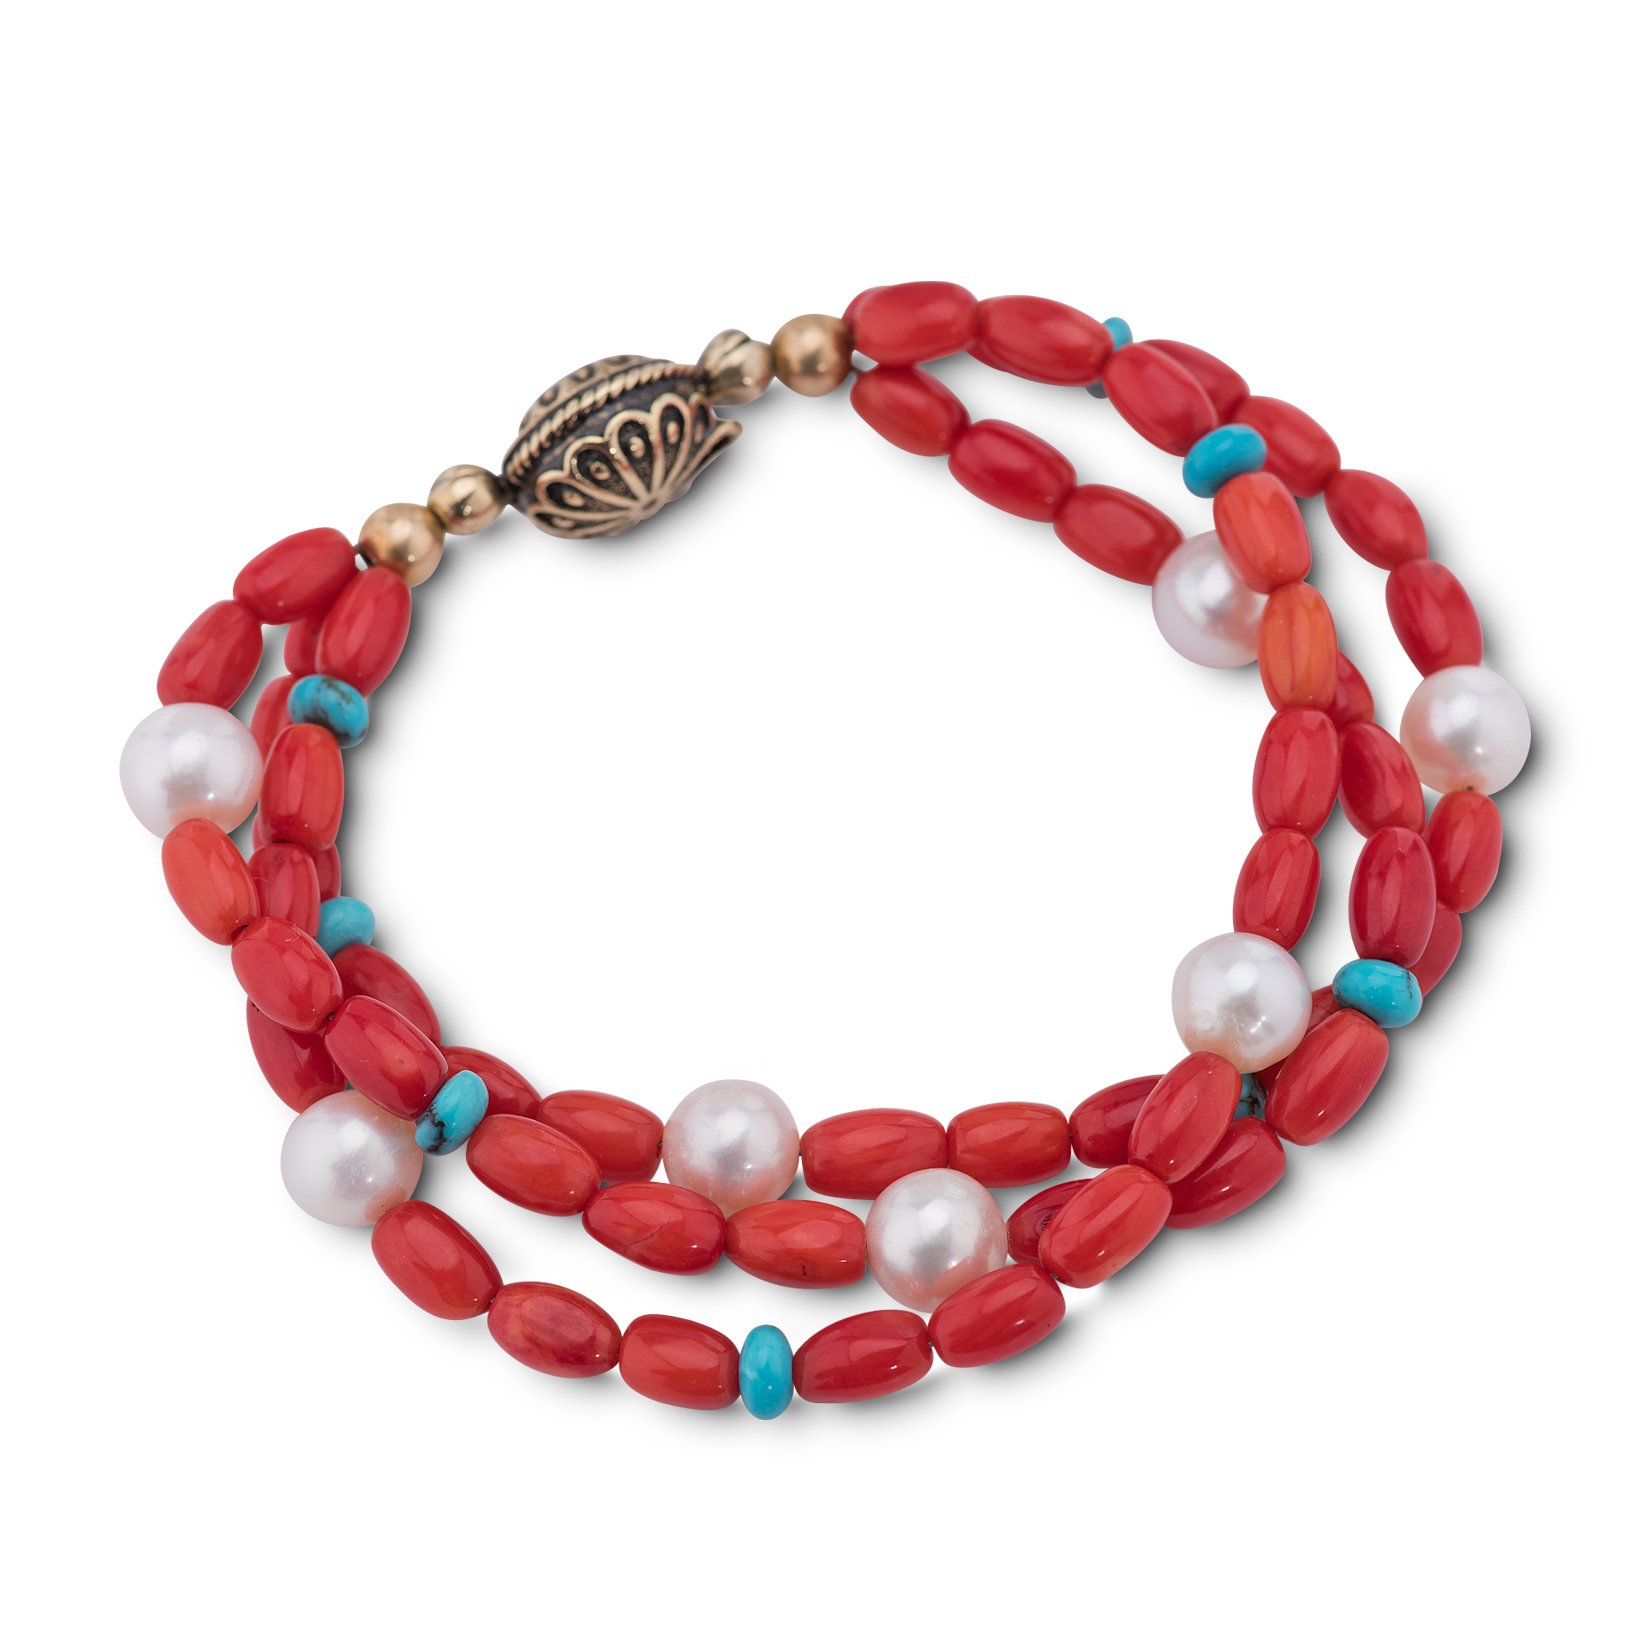 American West Red Coral Turquoise Freshwater Cultured Pearl Magnetic Beaded Bracelet by American West